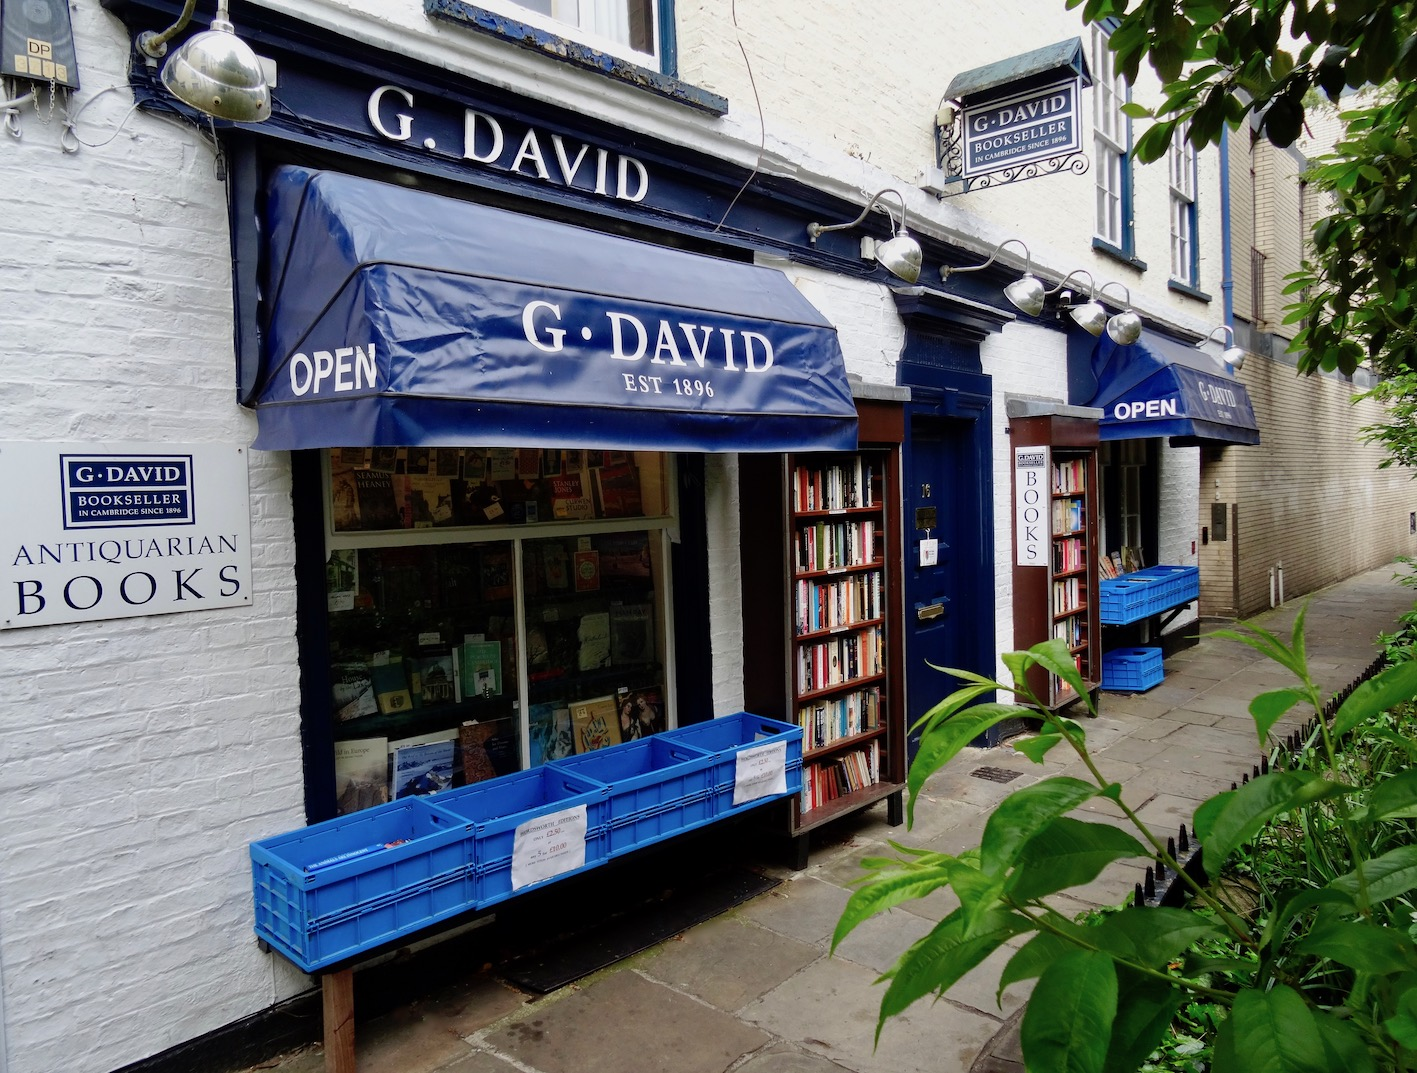 G. David Bookseller Cambridge England.